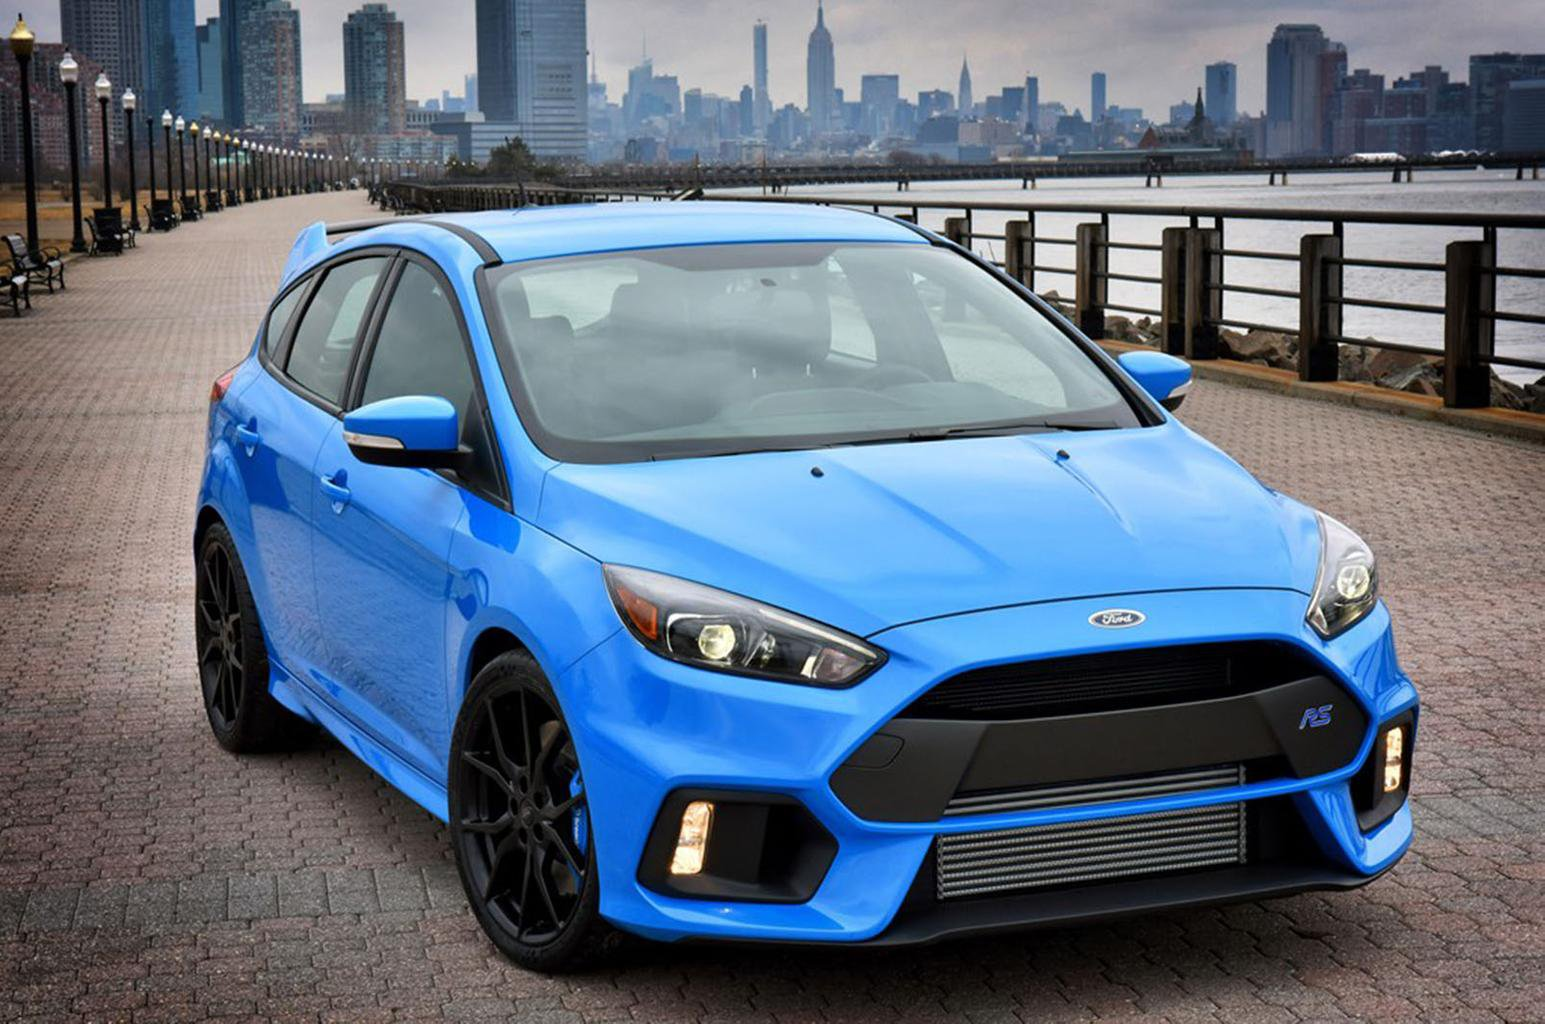 2016 Ford Focus RS - on sale dates, engine details and pricing